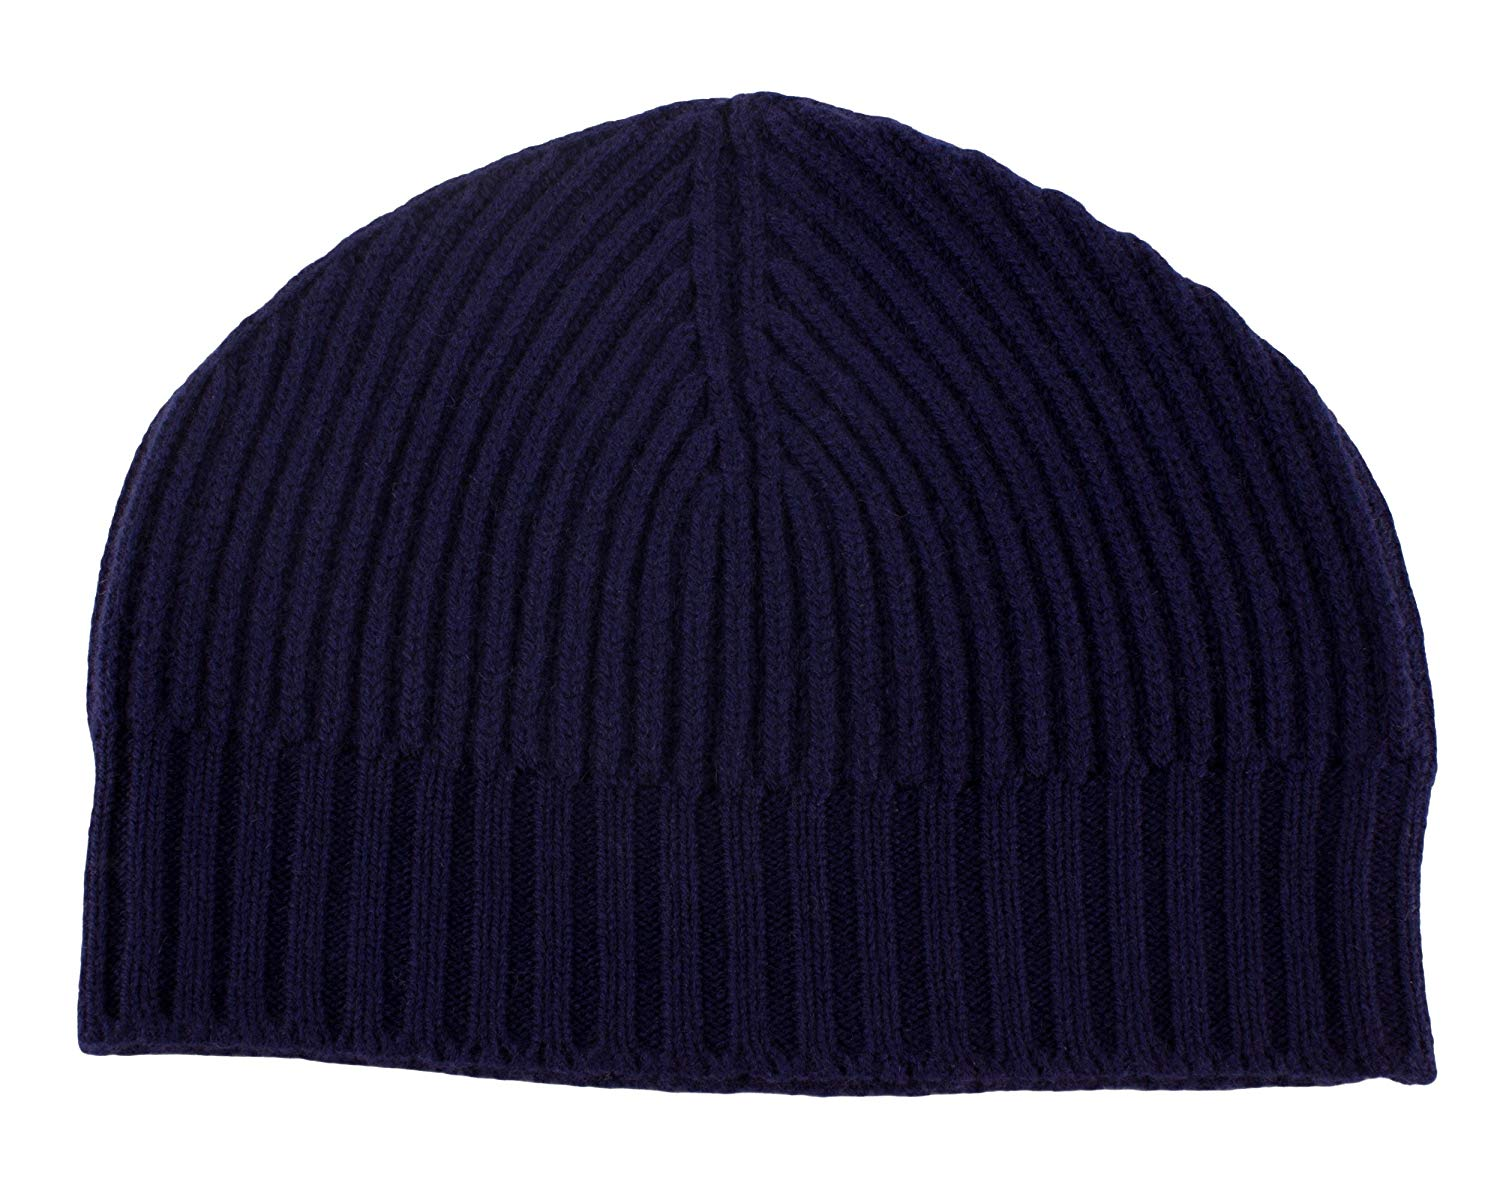 286f2a89c56 Get Quotations · Love Cashmere Mens Ribbed 100% Cashmere Beanie Hat - Navy  Blue - Made in Scotland